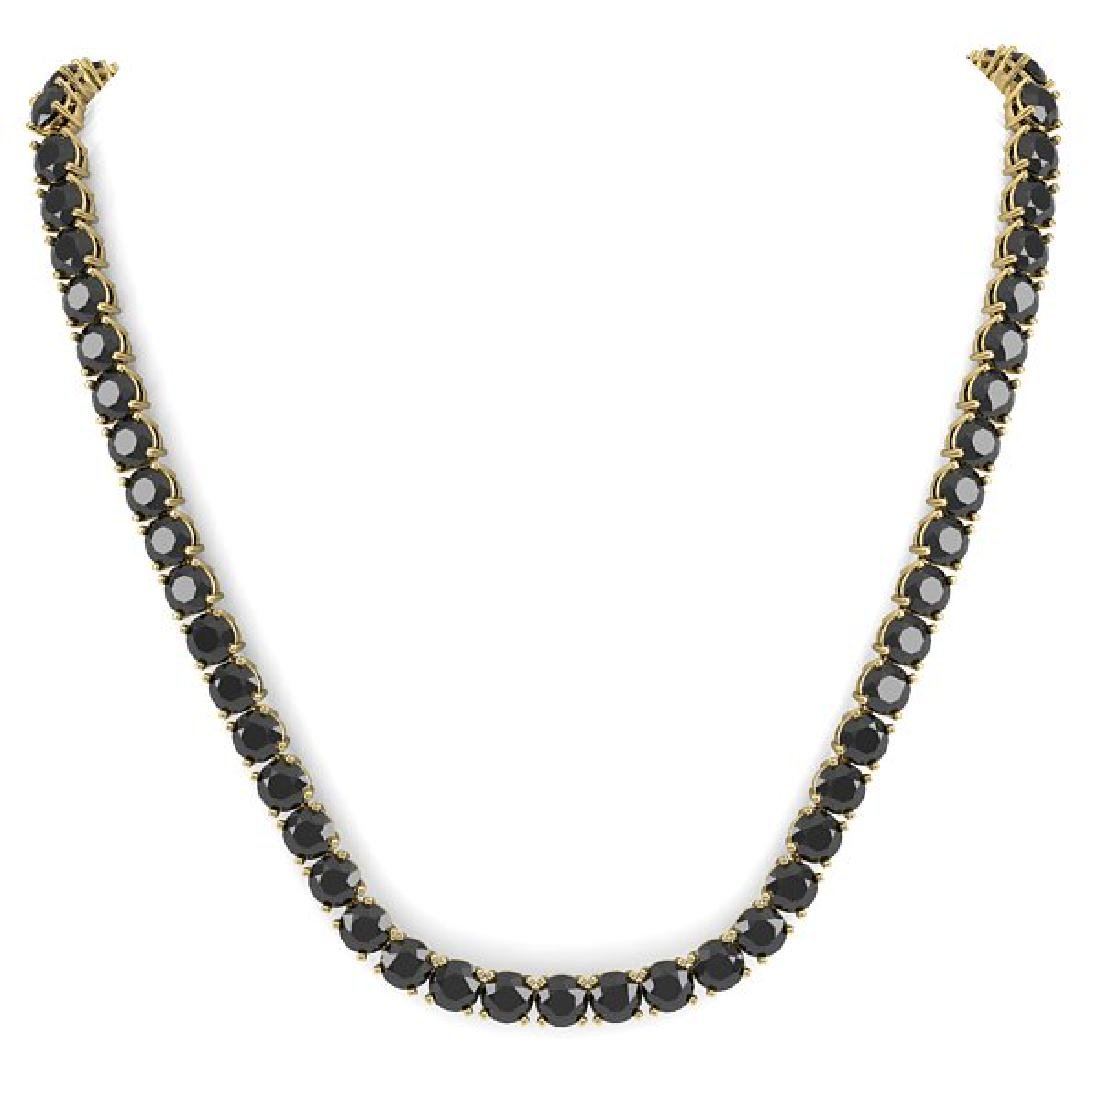 40 CTW Certified Black VS Diamond Necklace 18K Yellow - 3